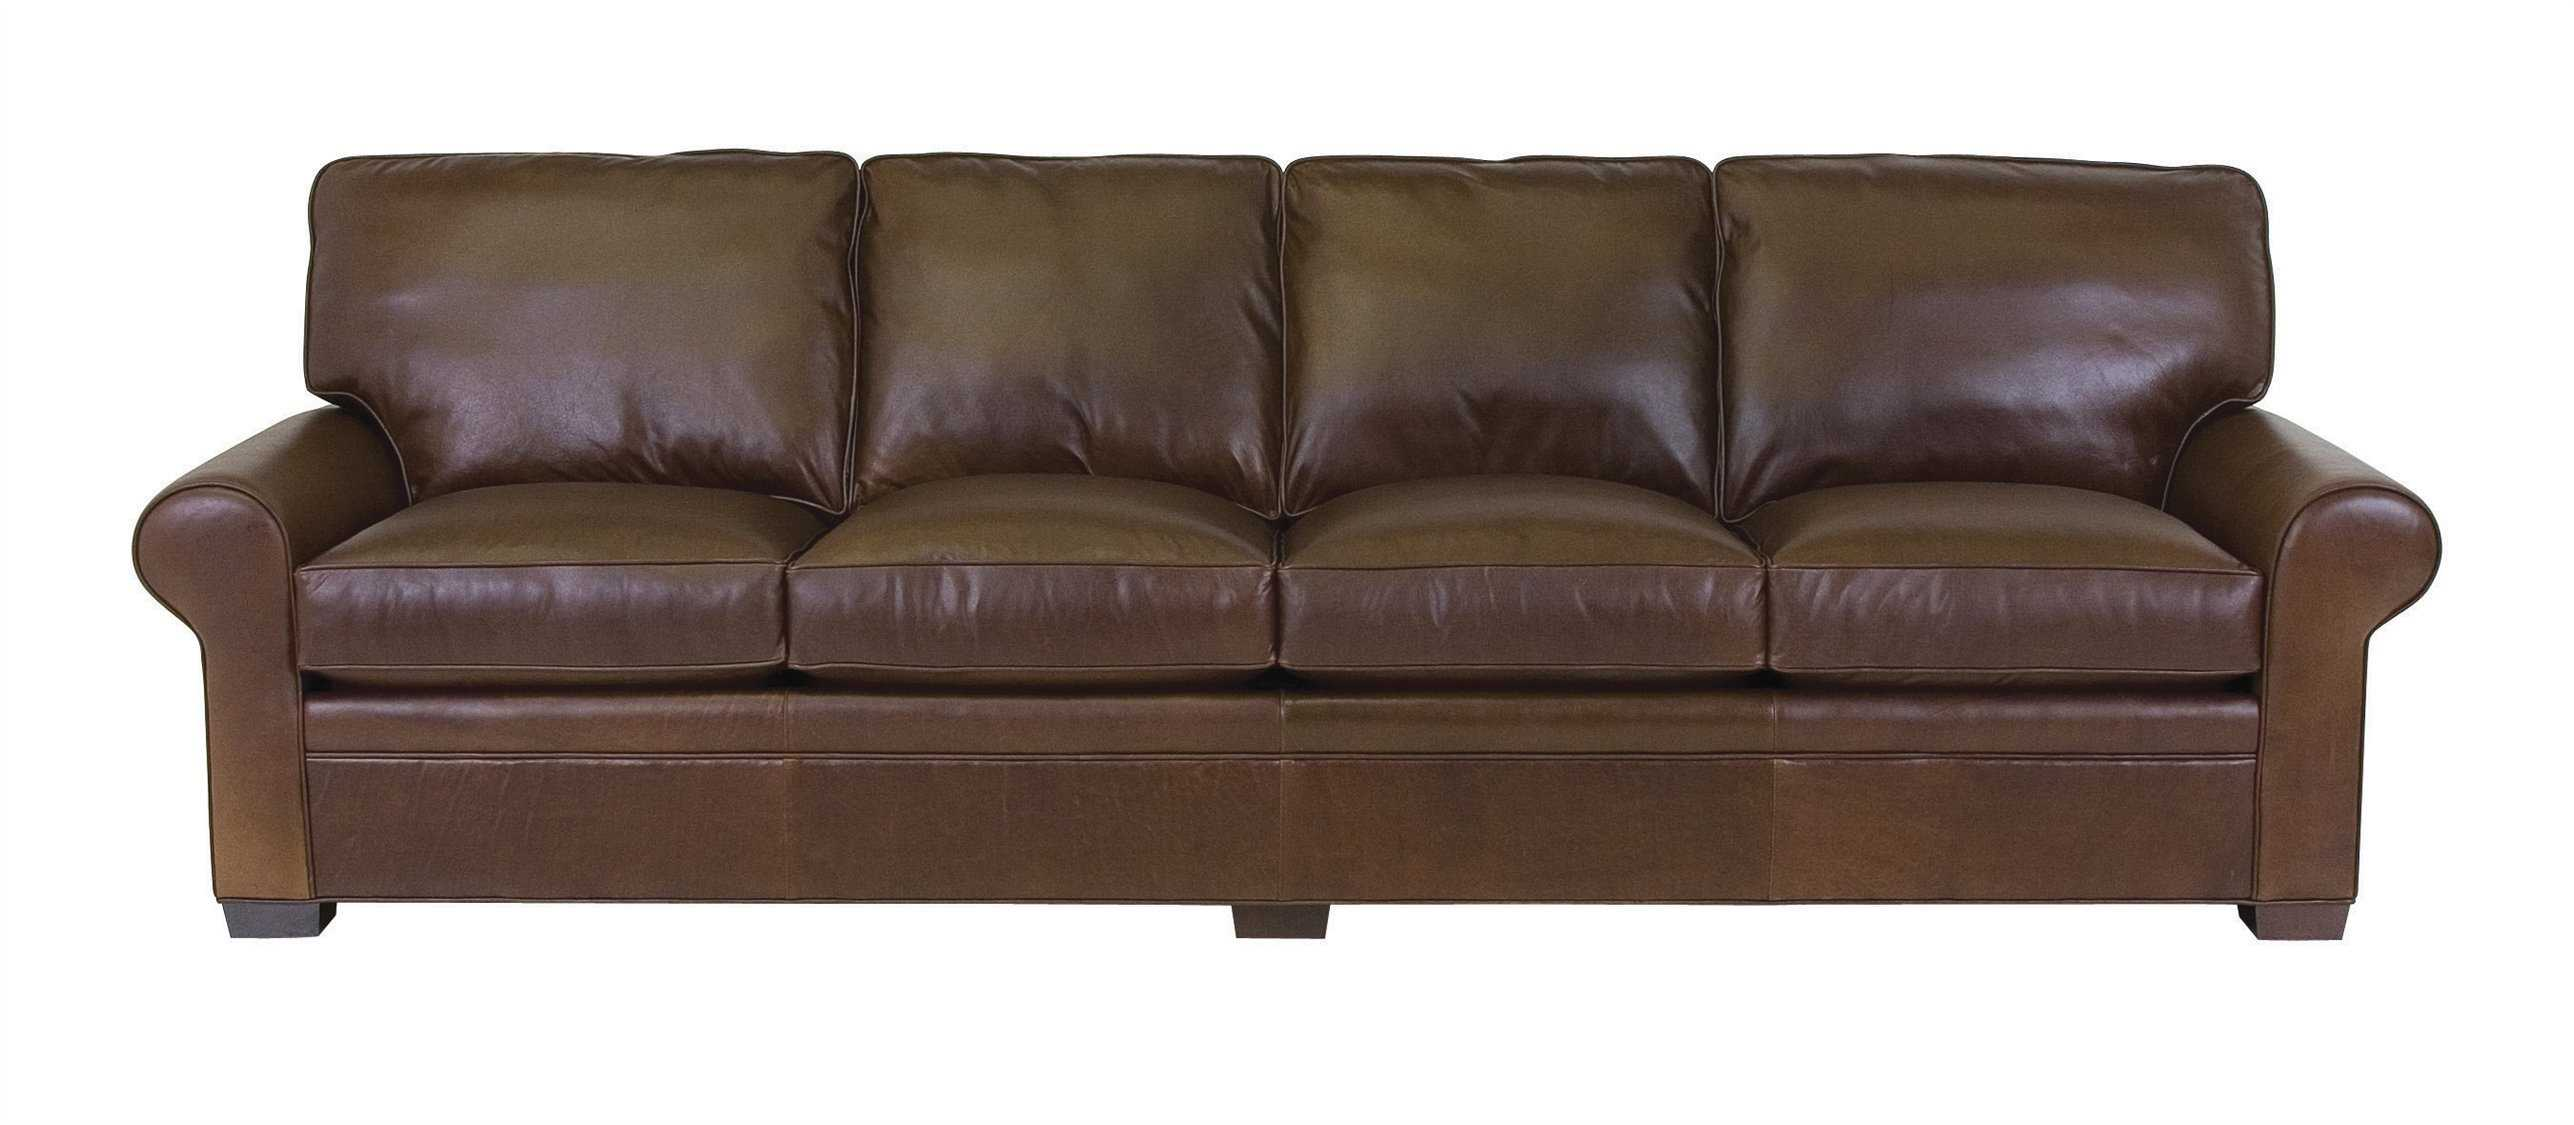 Incroyable Classic Leather Library Sofa Classic Leather Library Sofa